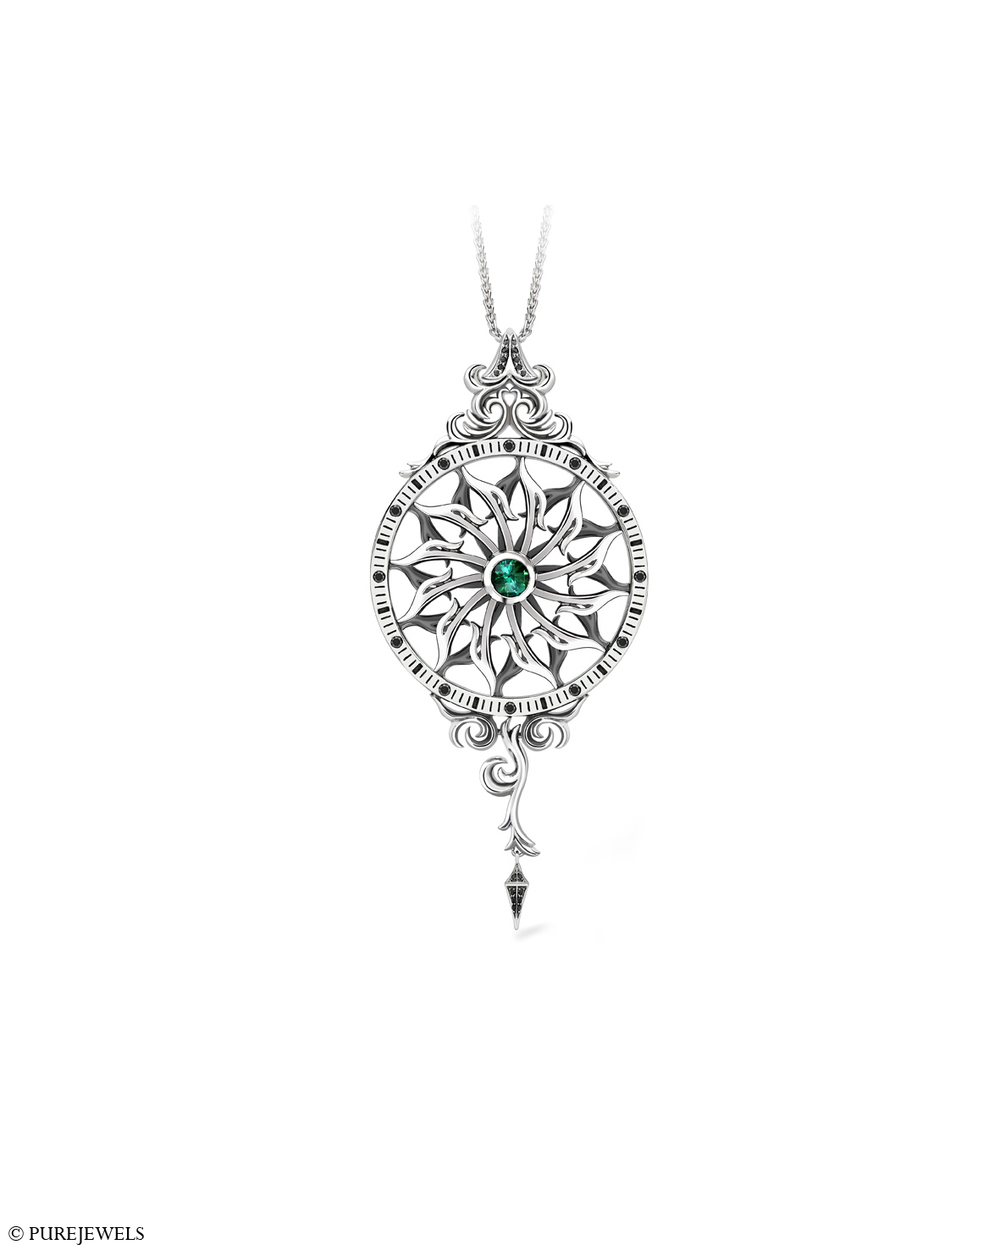 Lonmin Design Innovation Award 2011 Winning Spinning Pendant:  Platinum, black diamonds & tourmaline. Designed for  PureJewels .